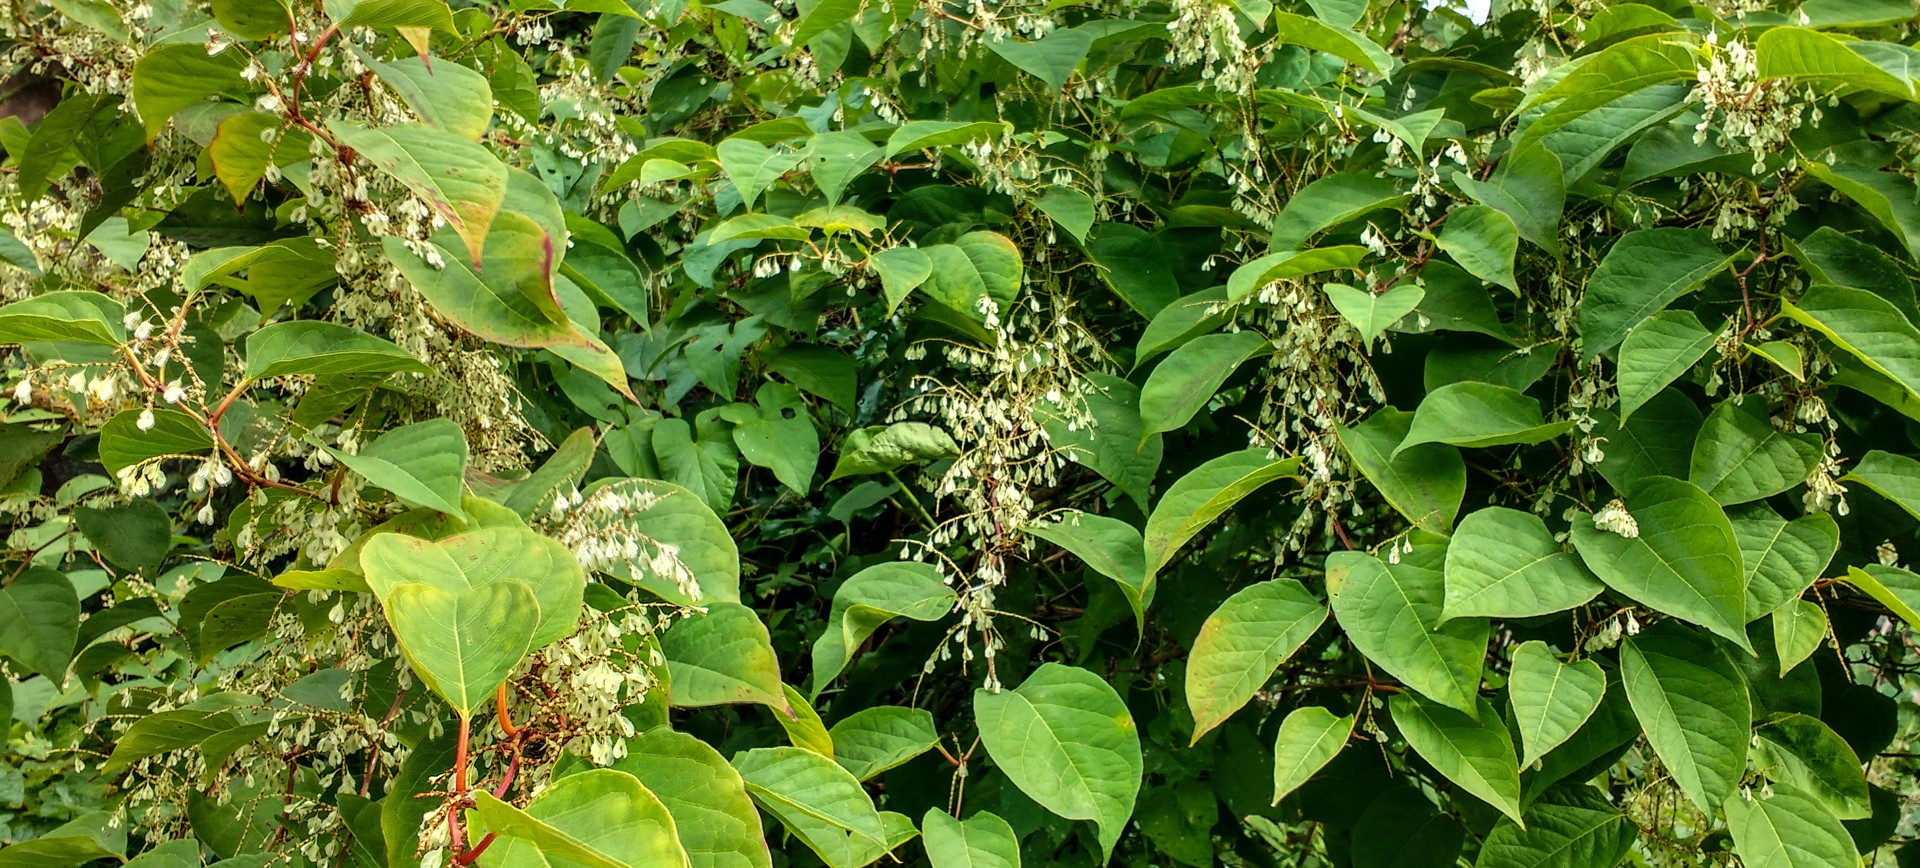 Zen Knotweed, Japanese Knotweed Removal, Cardiff, South Wales